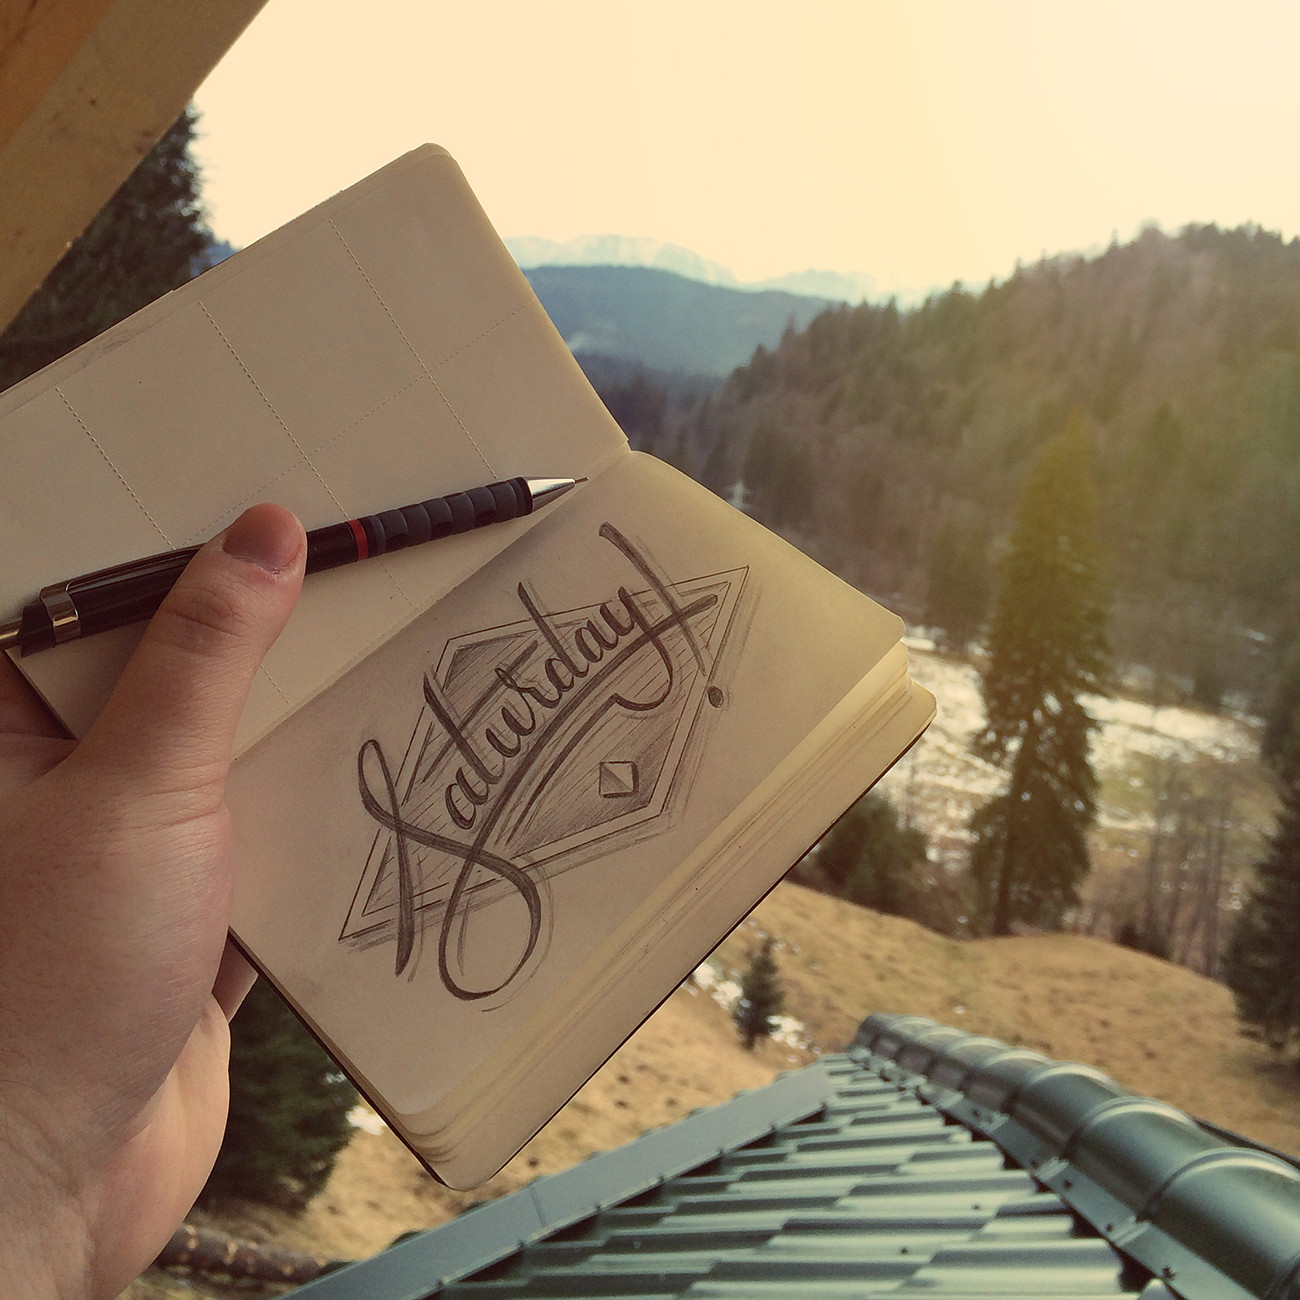 A Week Of Lettering – Saturday